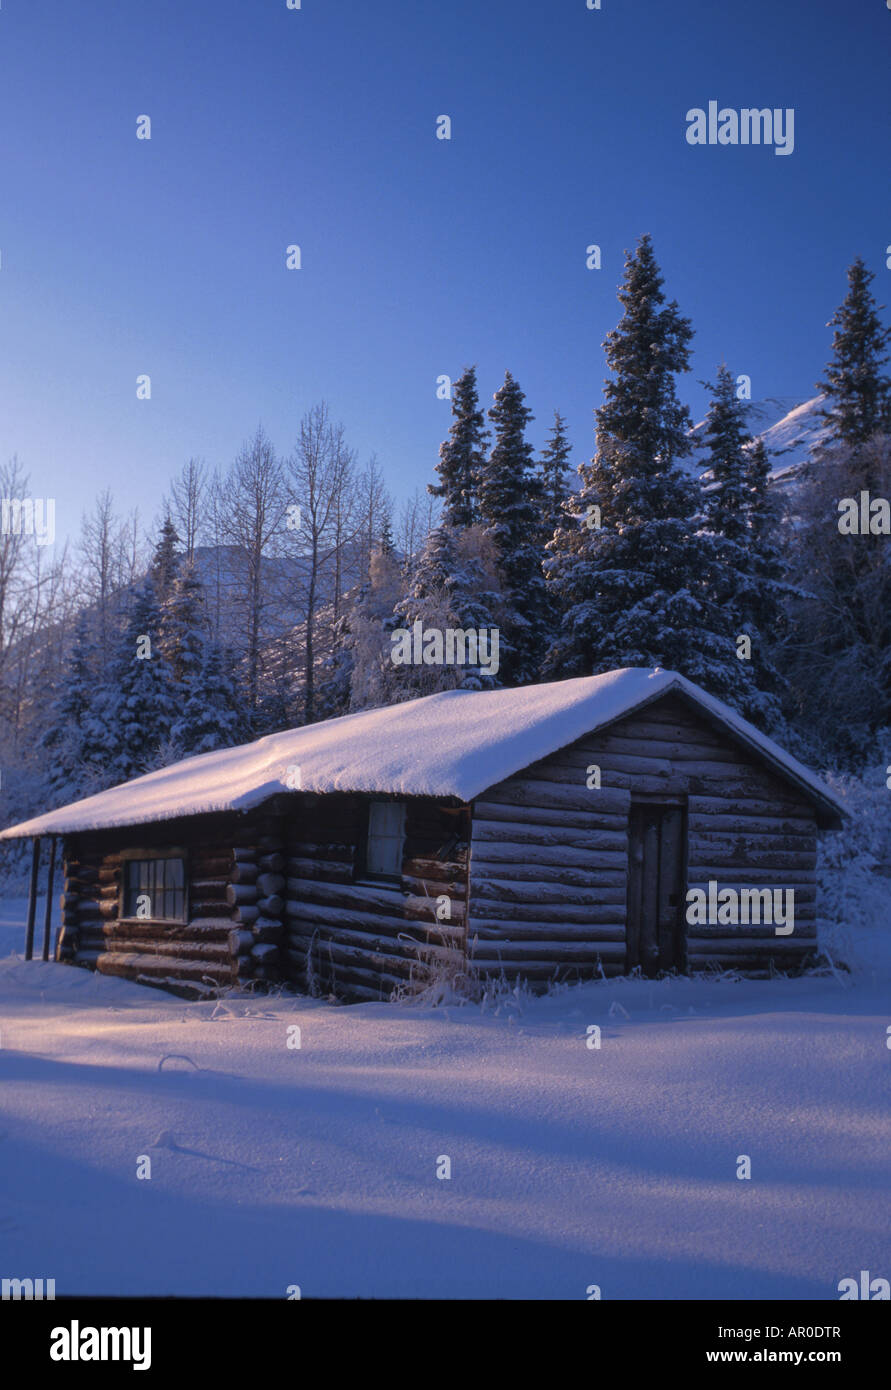 Rustic Log Cabin Summit Lake Chugach Natl Forest Southcentral Alaska Winter Snow Treee - Stock Image